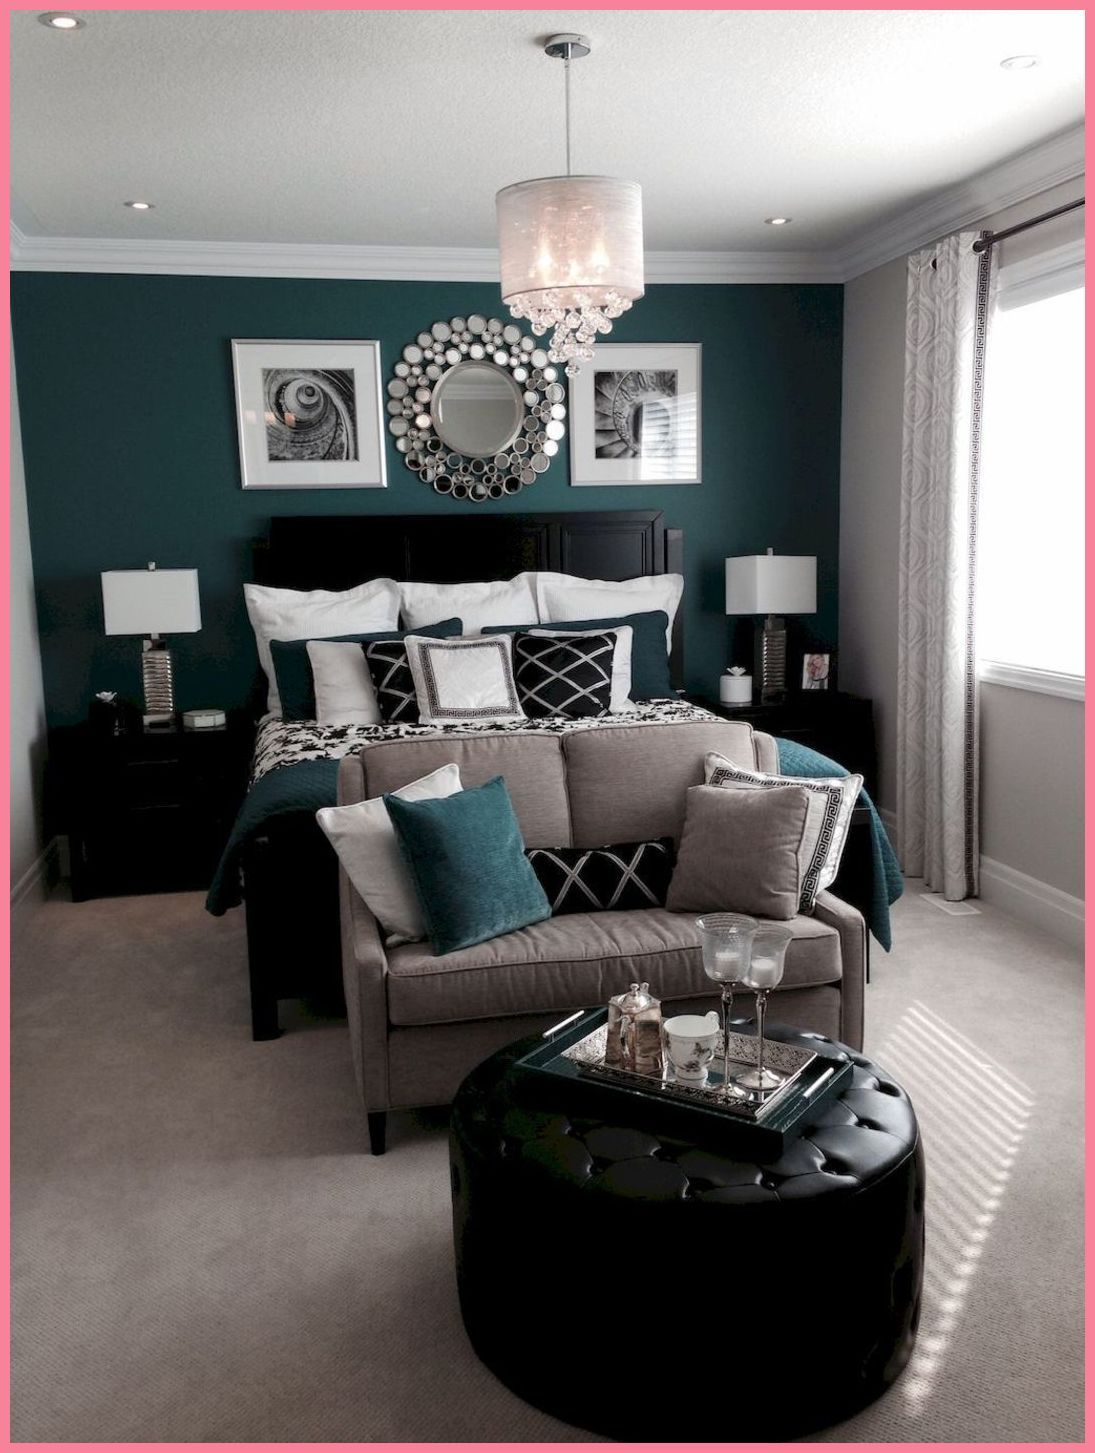 Bedroom Decorating Ideas Tips For Decorating The Bedroom Click